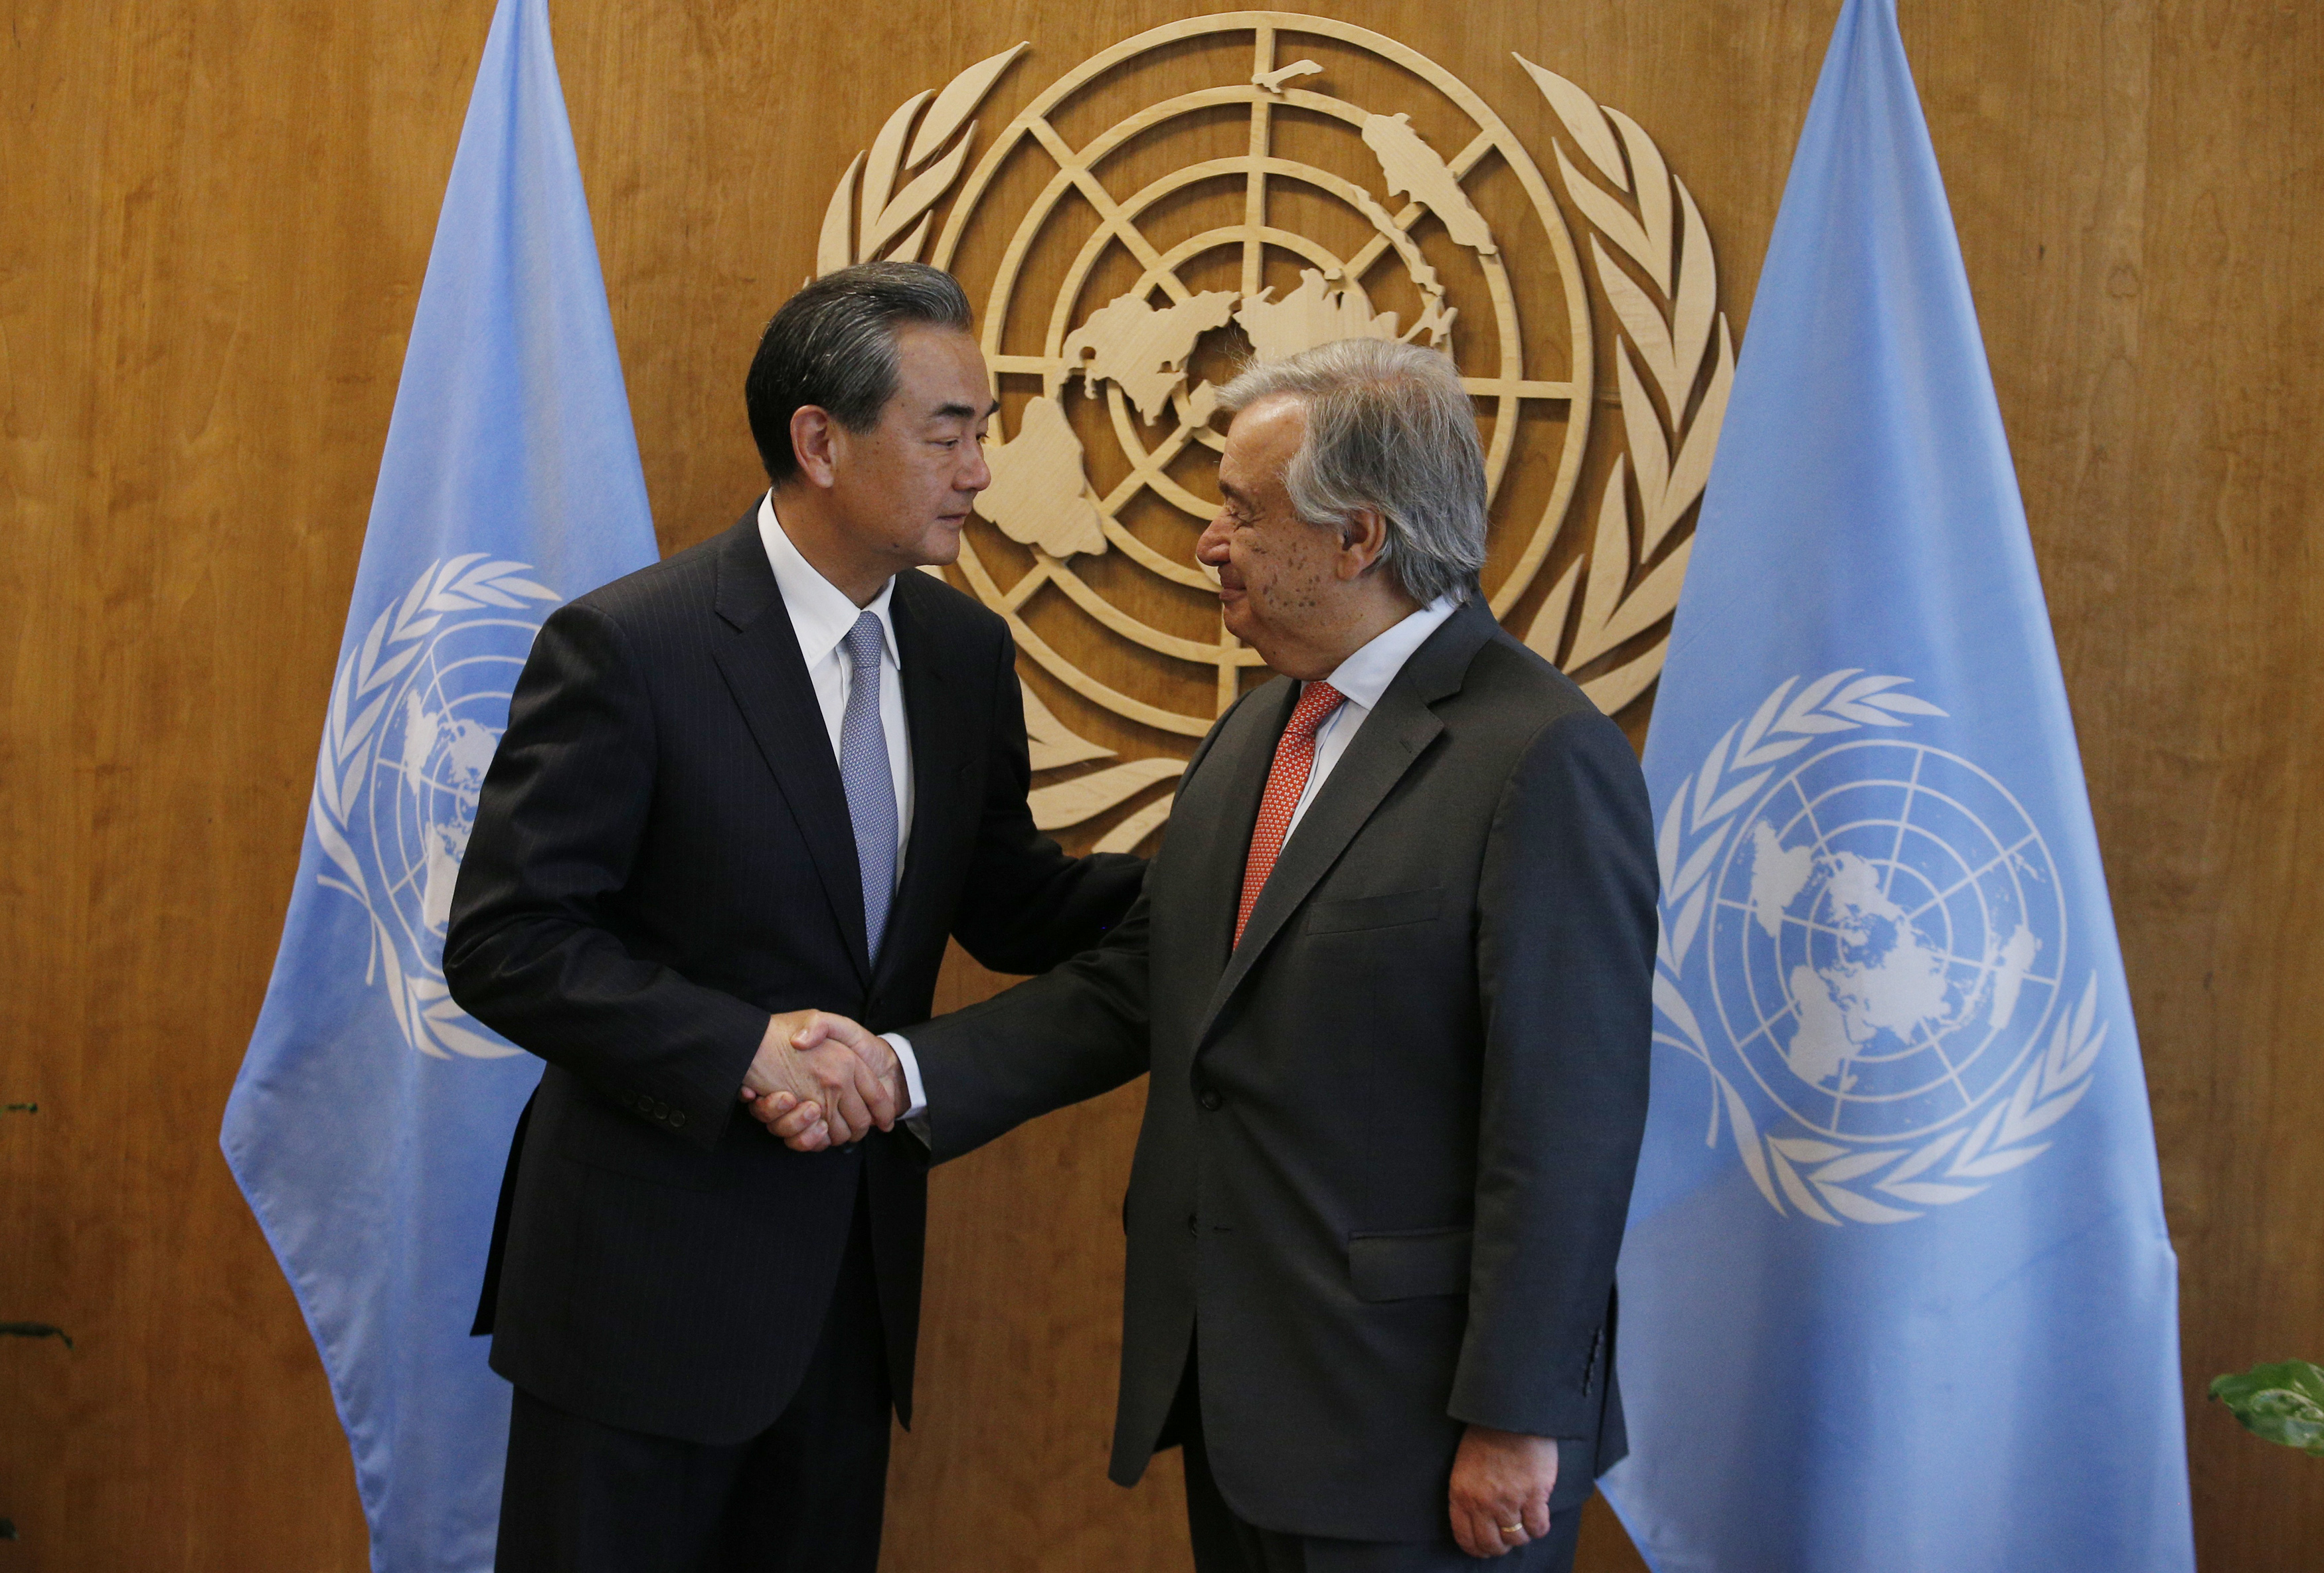 FILE PHOTO: Chinese Foreign Minister Wang Yi (L) shakes hands with United Nations Secretary General Antonio Guterres prior to their meeting at U.N. headquarters in New York, U.S., September 18, 2017. REUTERS/Brendan McDermid